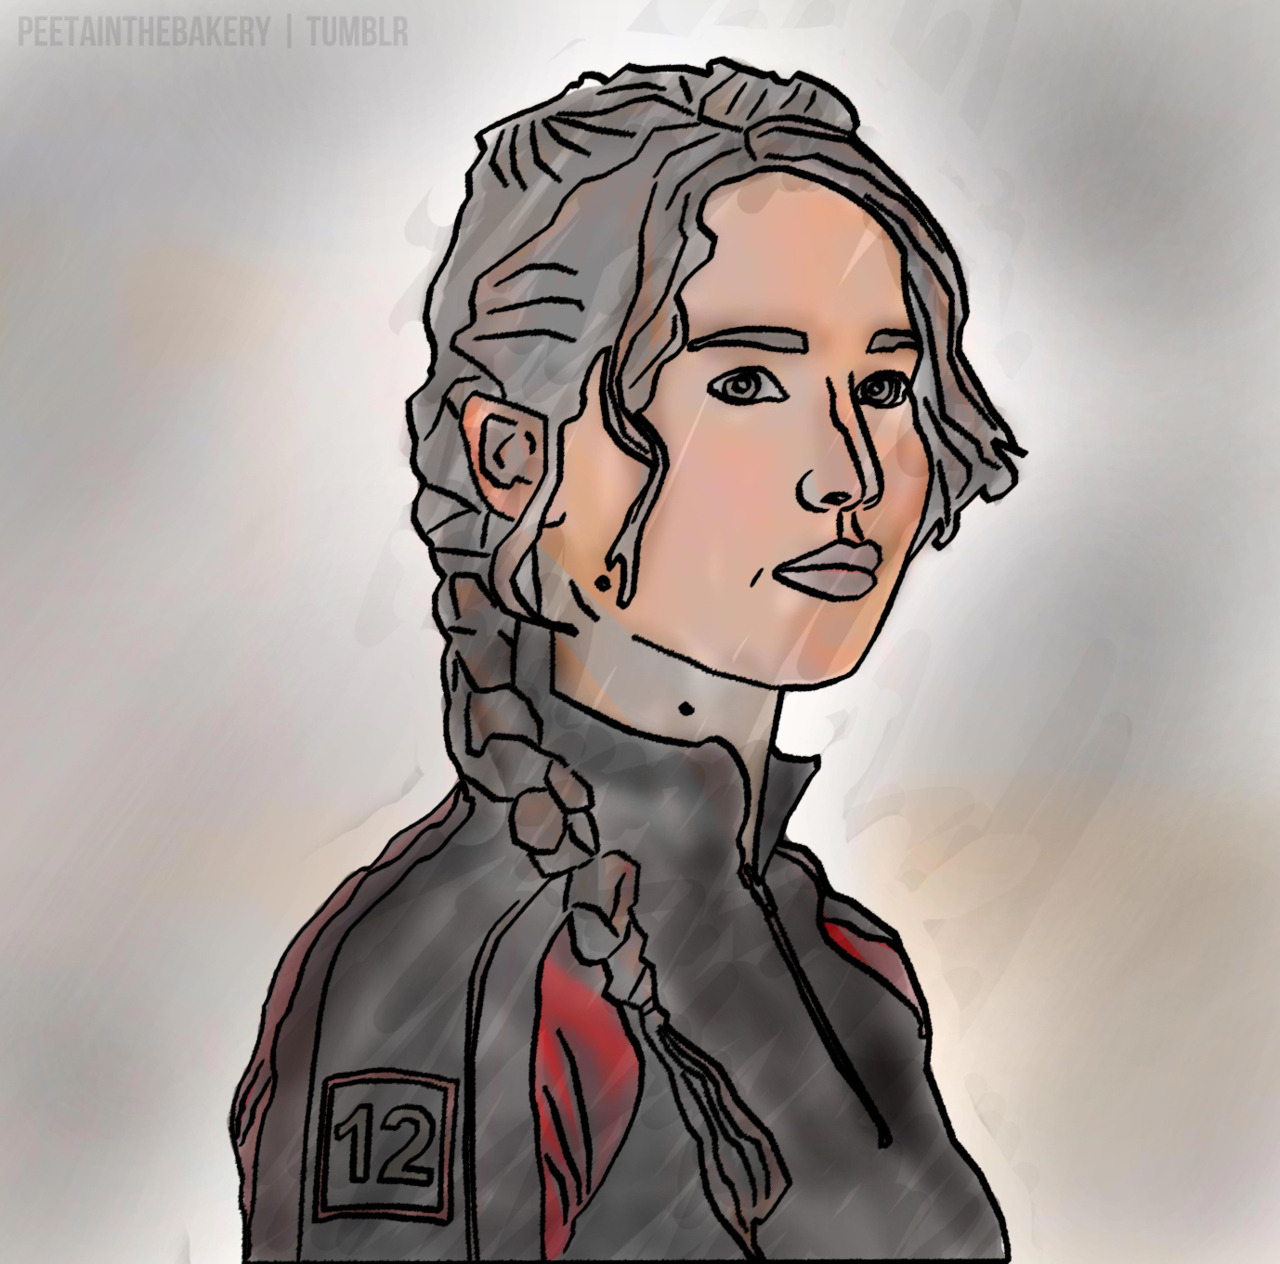 From District Twelve, Katniss Everdeen.